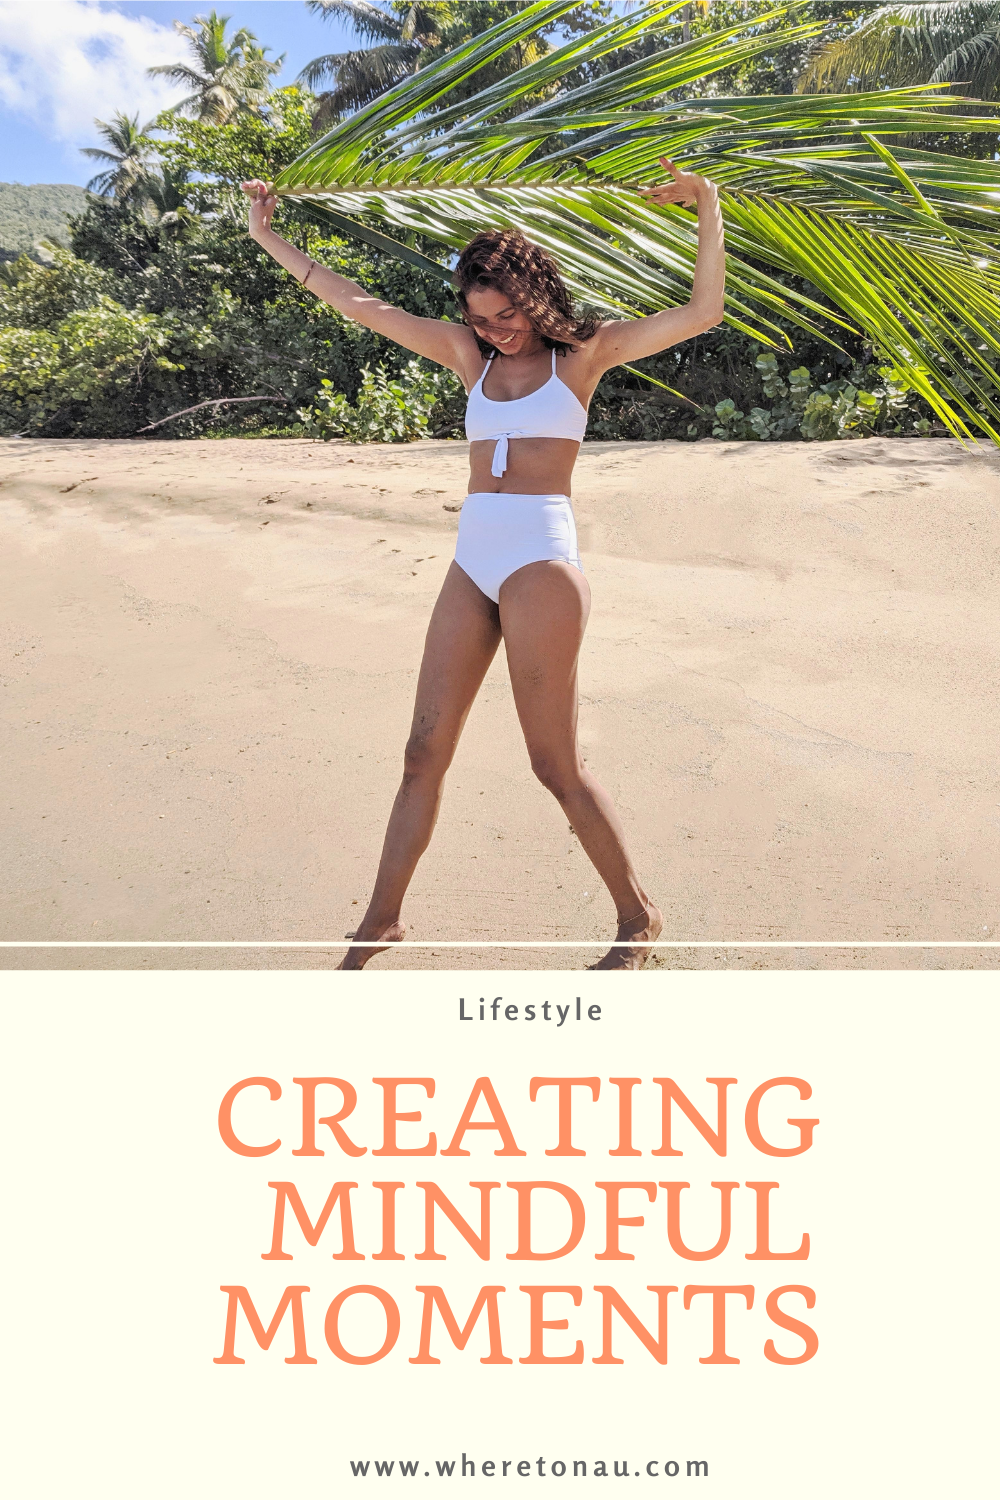 Using daily affirmations such as I am love to practice mindful thinking and living in the now. Bringing hope and believing in miracles to ground yourself. How to pause and practice stillness guide, standing still and breathing.